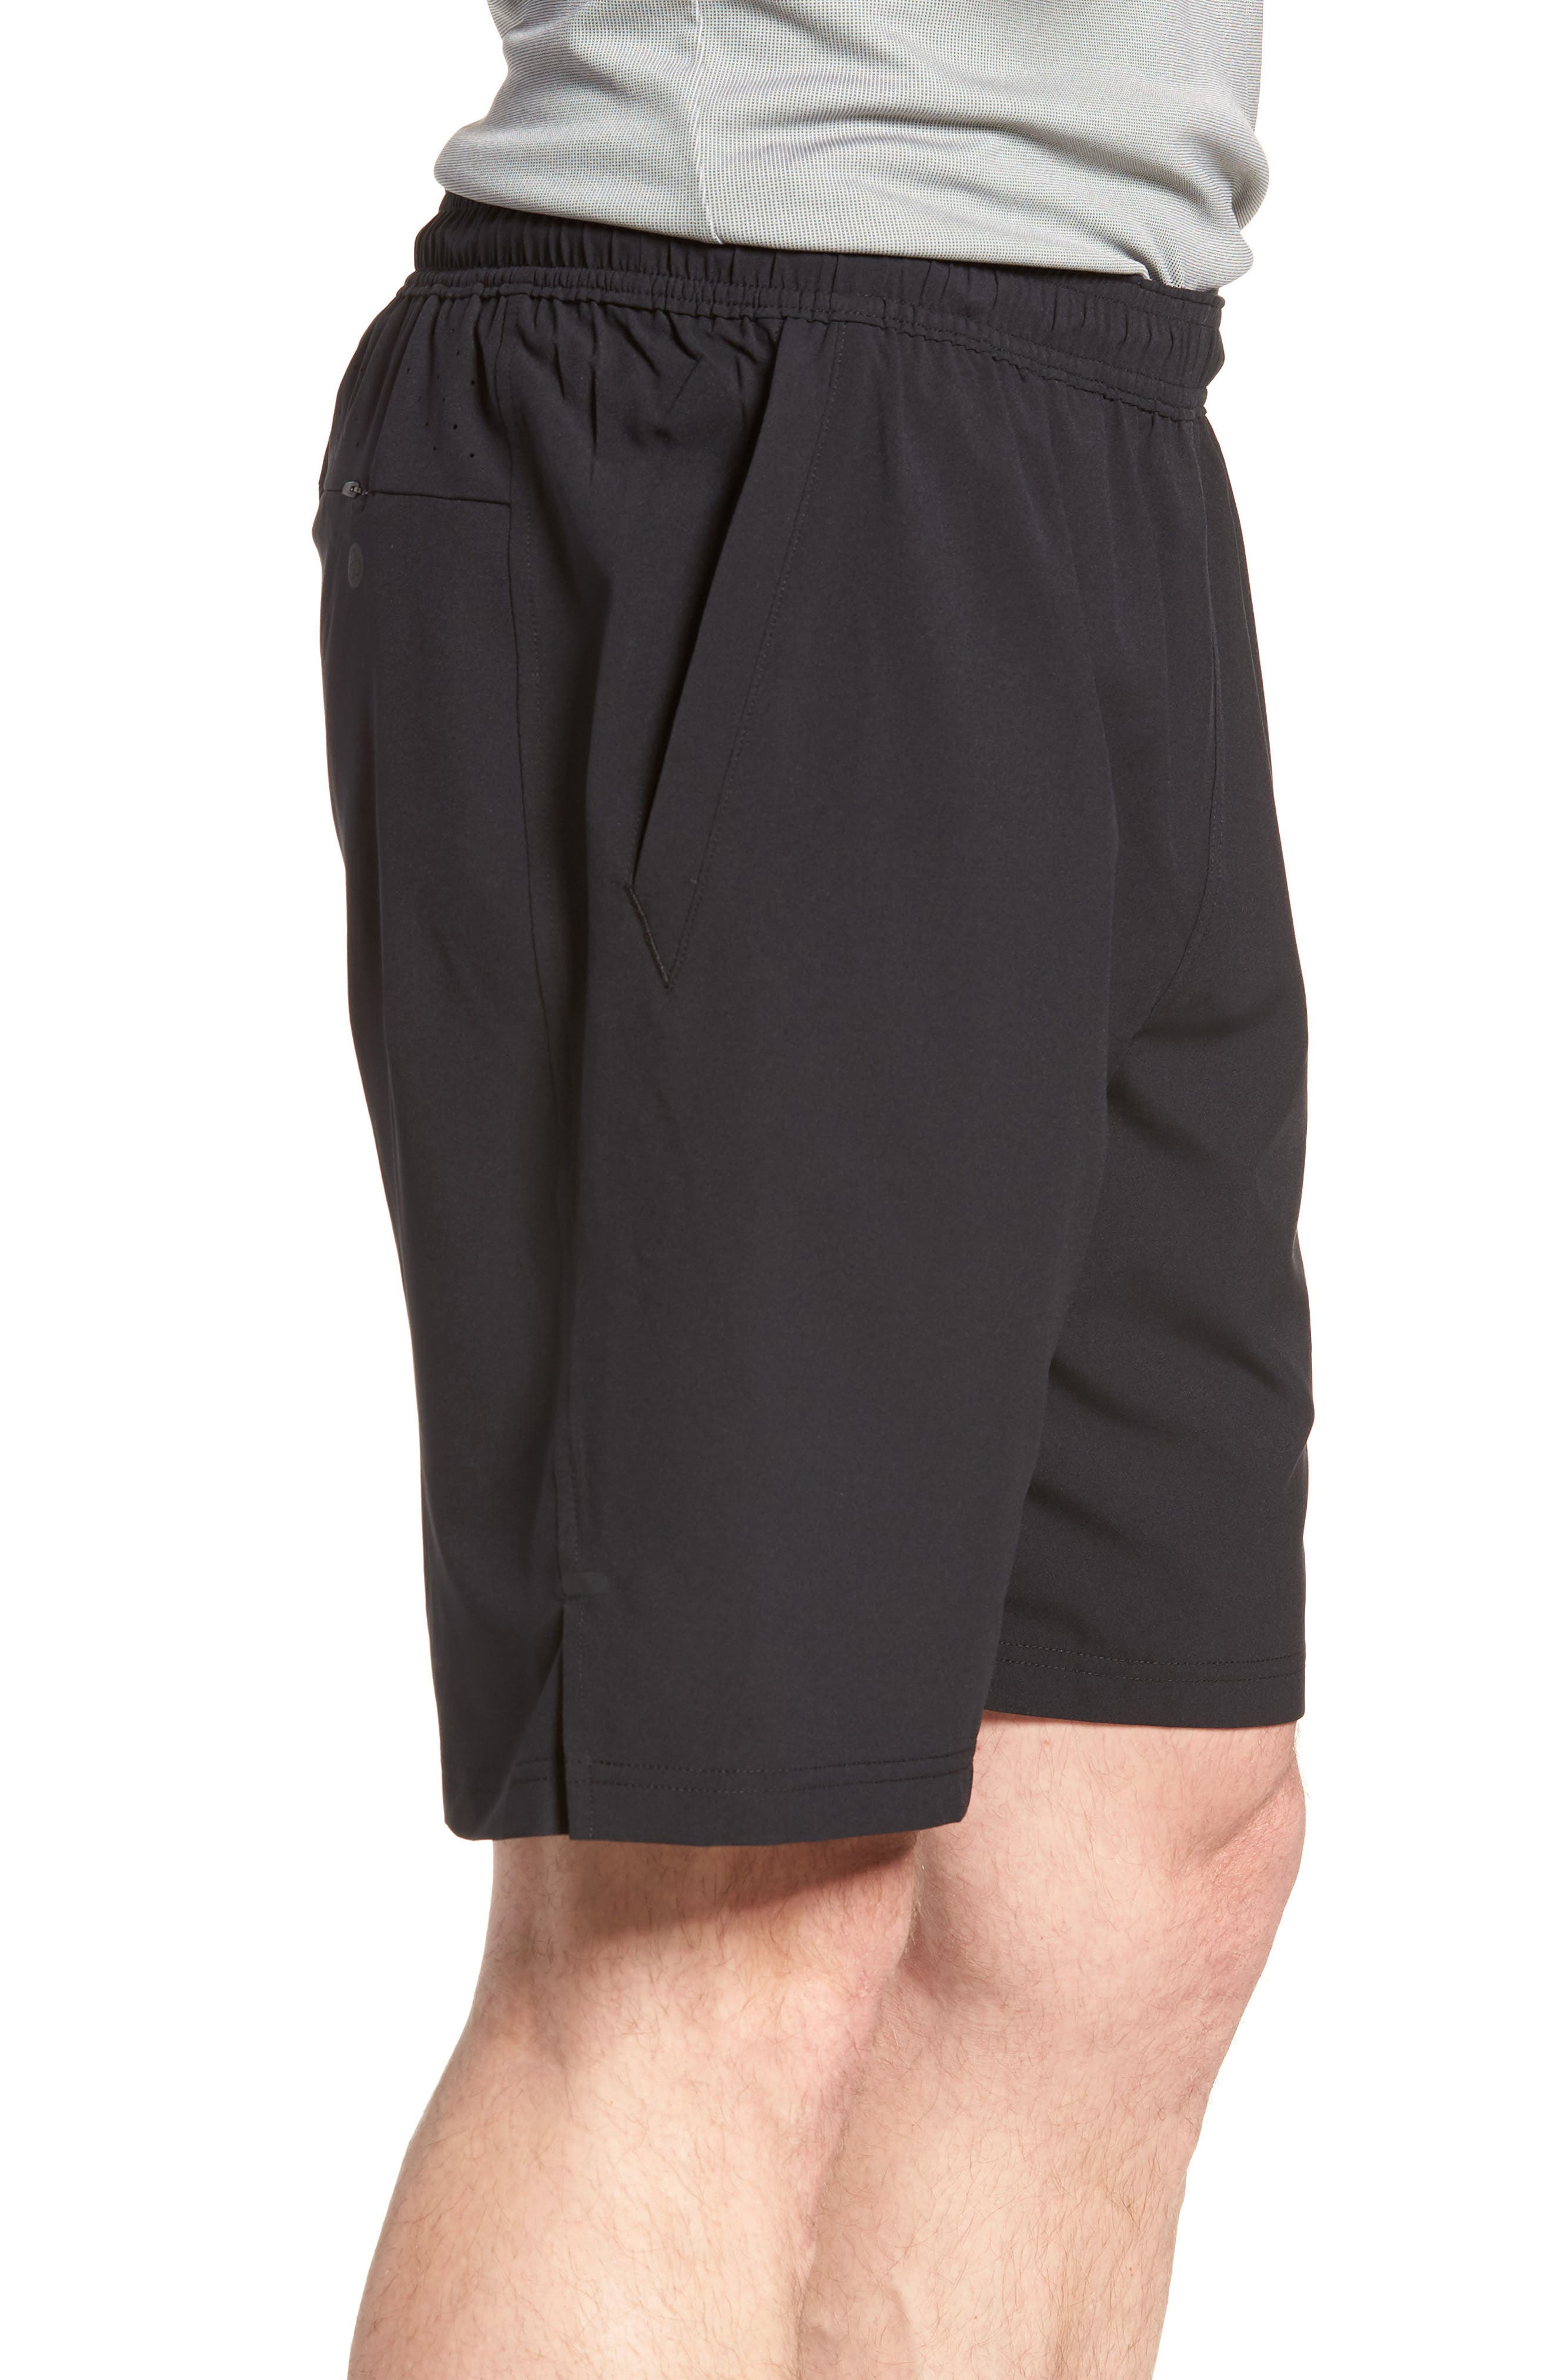 ZELLA,                             Graphite Perforated Shorts,                             Alternate thumbnail 3, color,                             BLACK